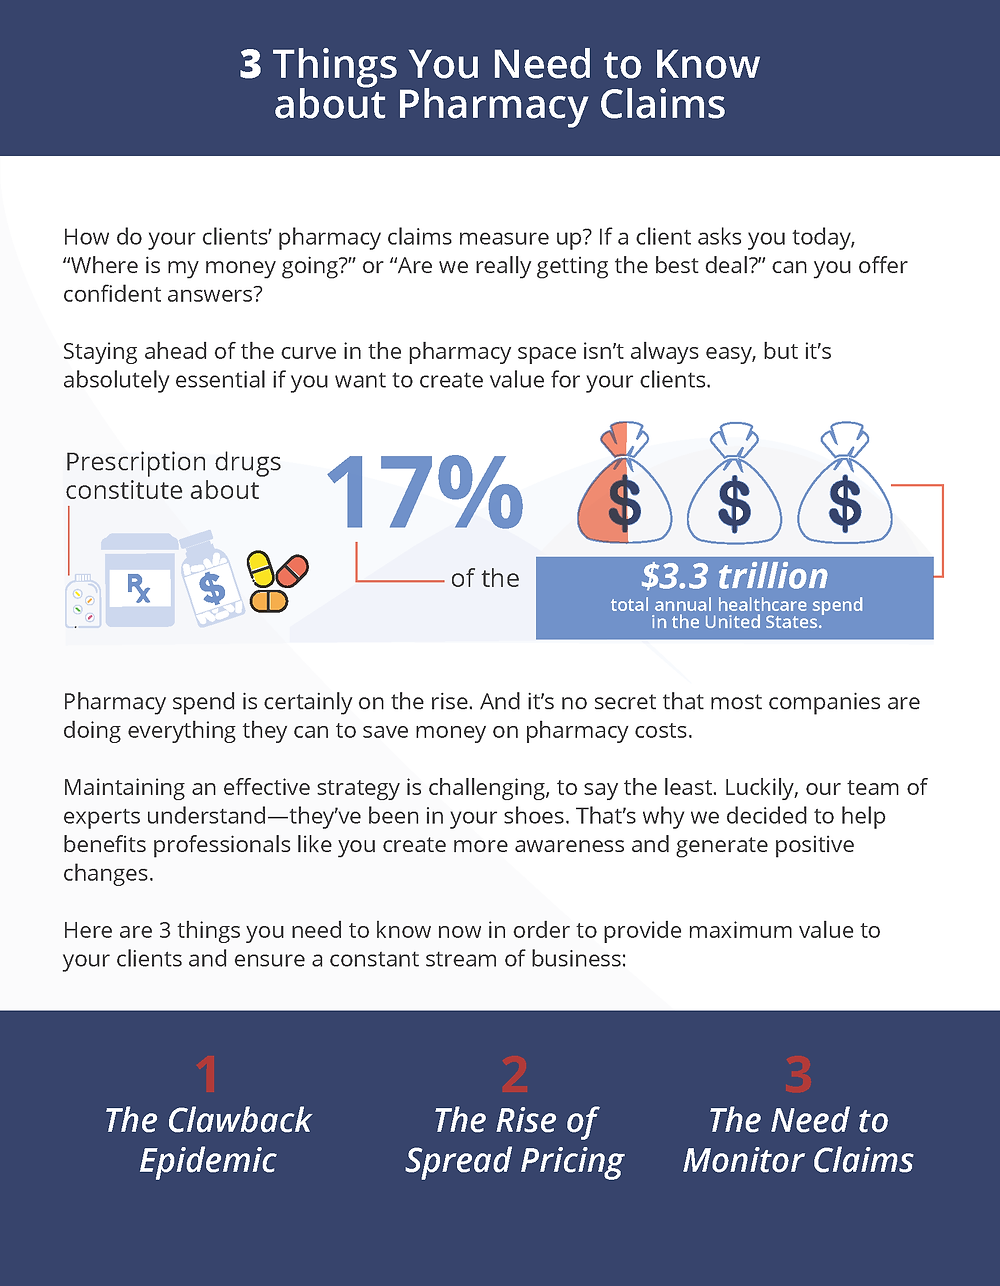 Infographic explaining three key elements of pharmacy claims.